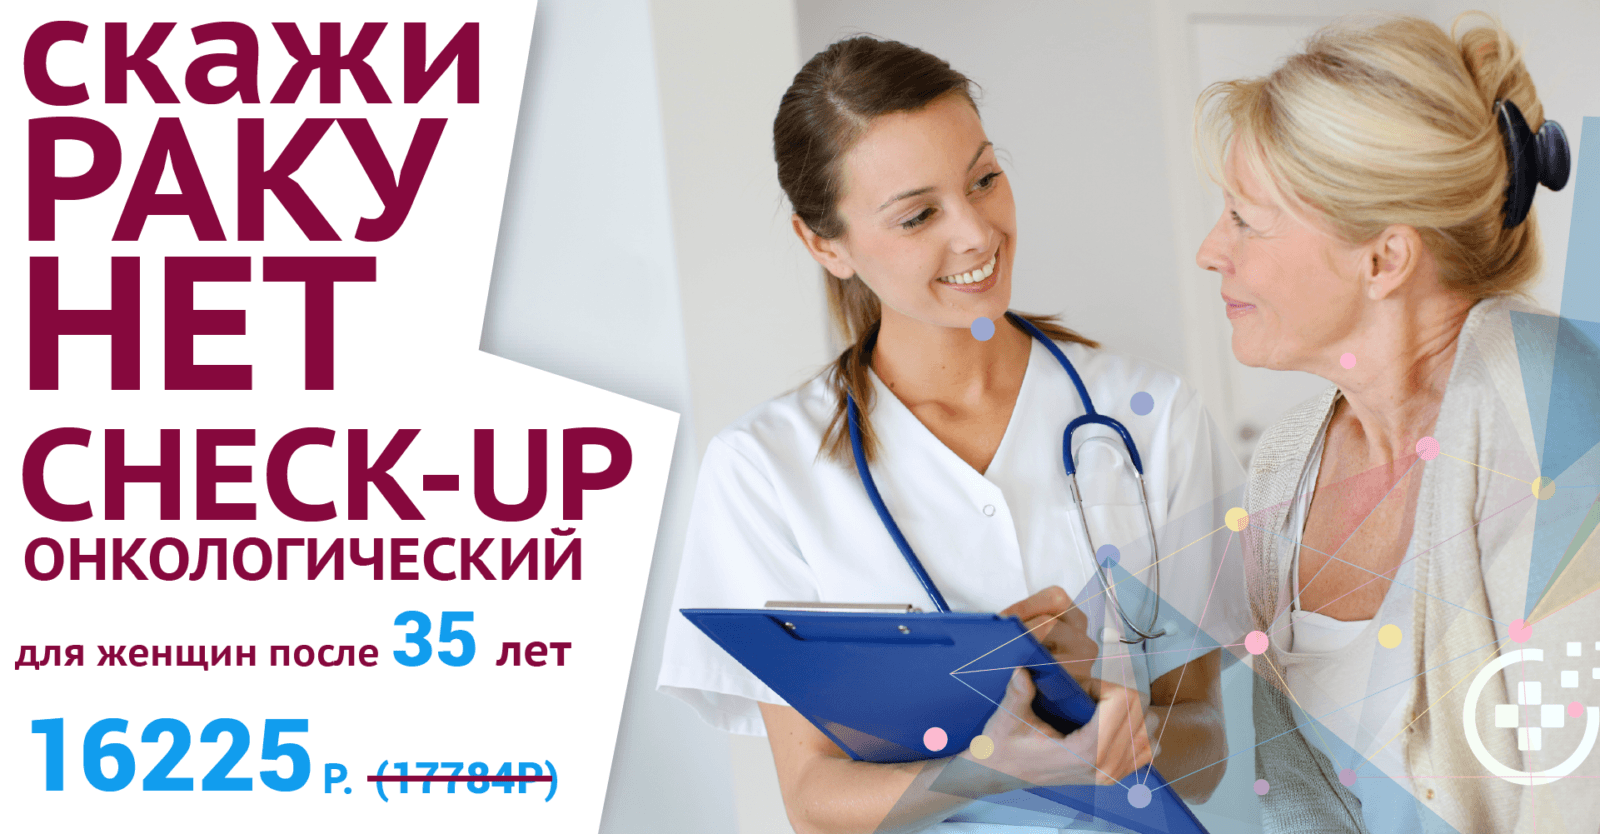 6check-up-rak-after-35-womannewslide